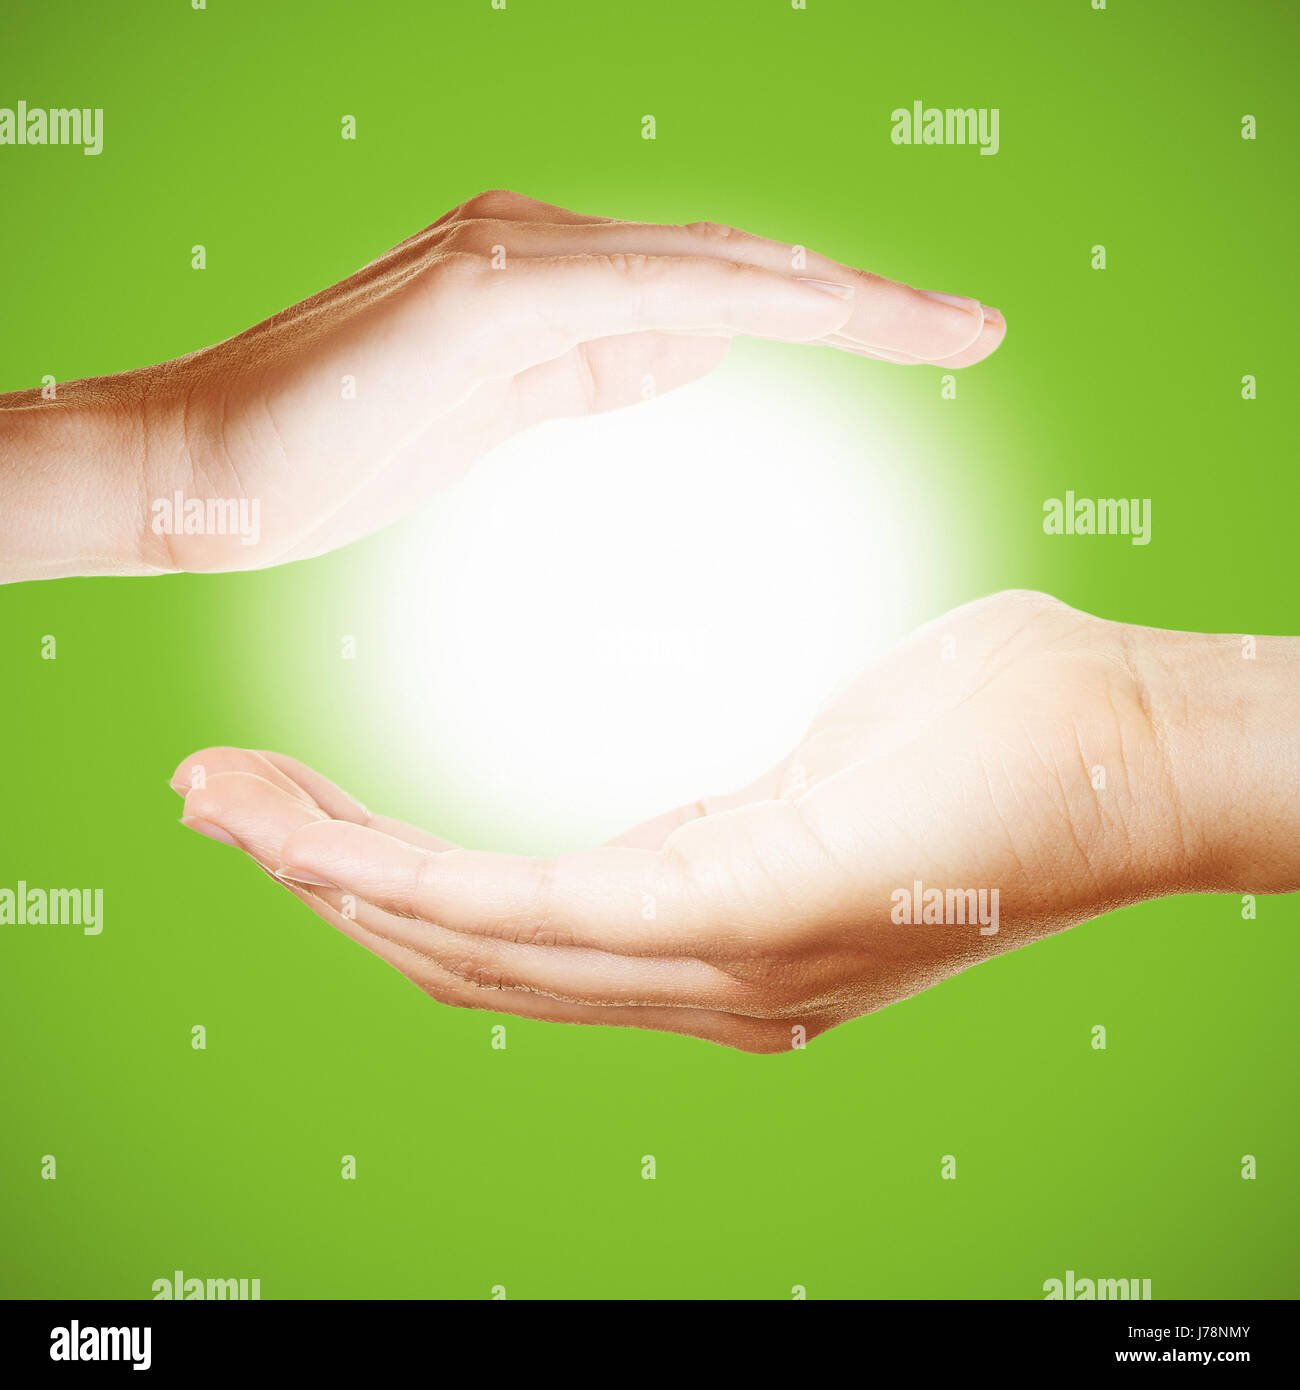 Two Hands Hold A Glowing Light Or Sun As Symbol For Meditation Or